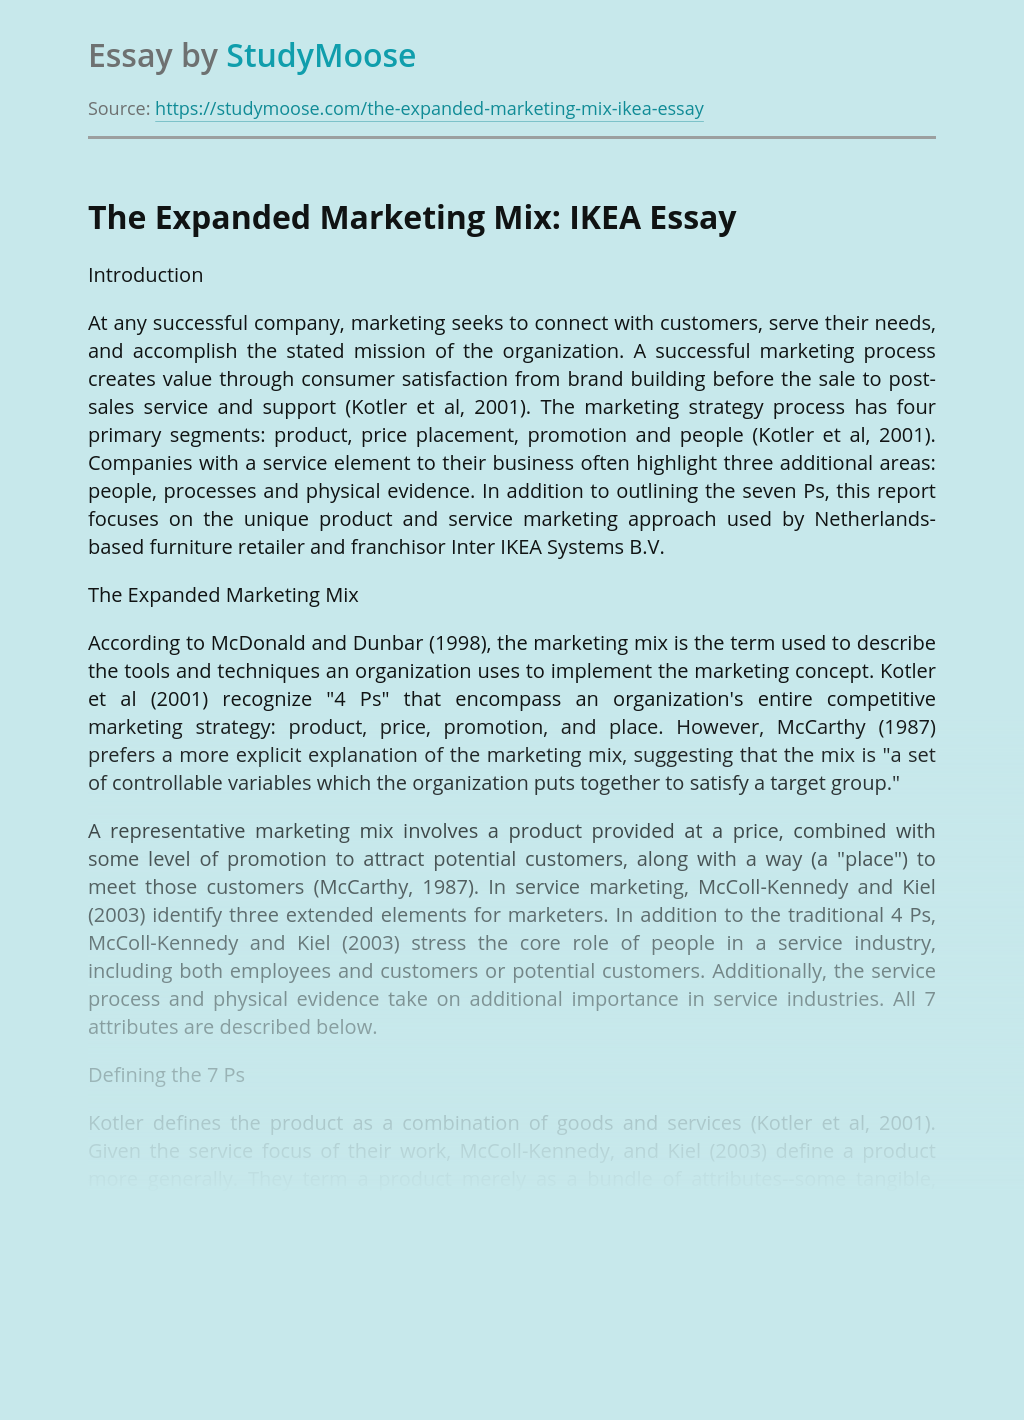 The Expanded Marketing Mix: IKEA